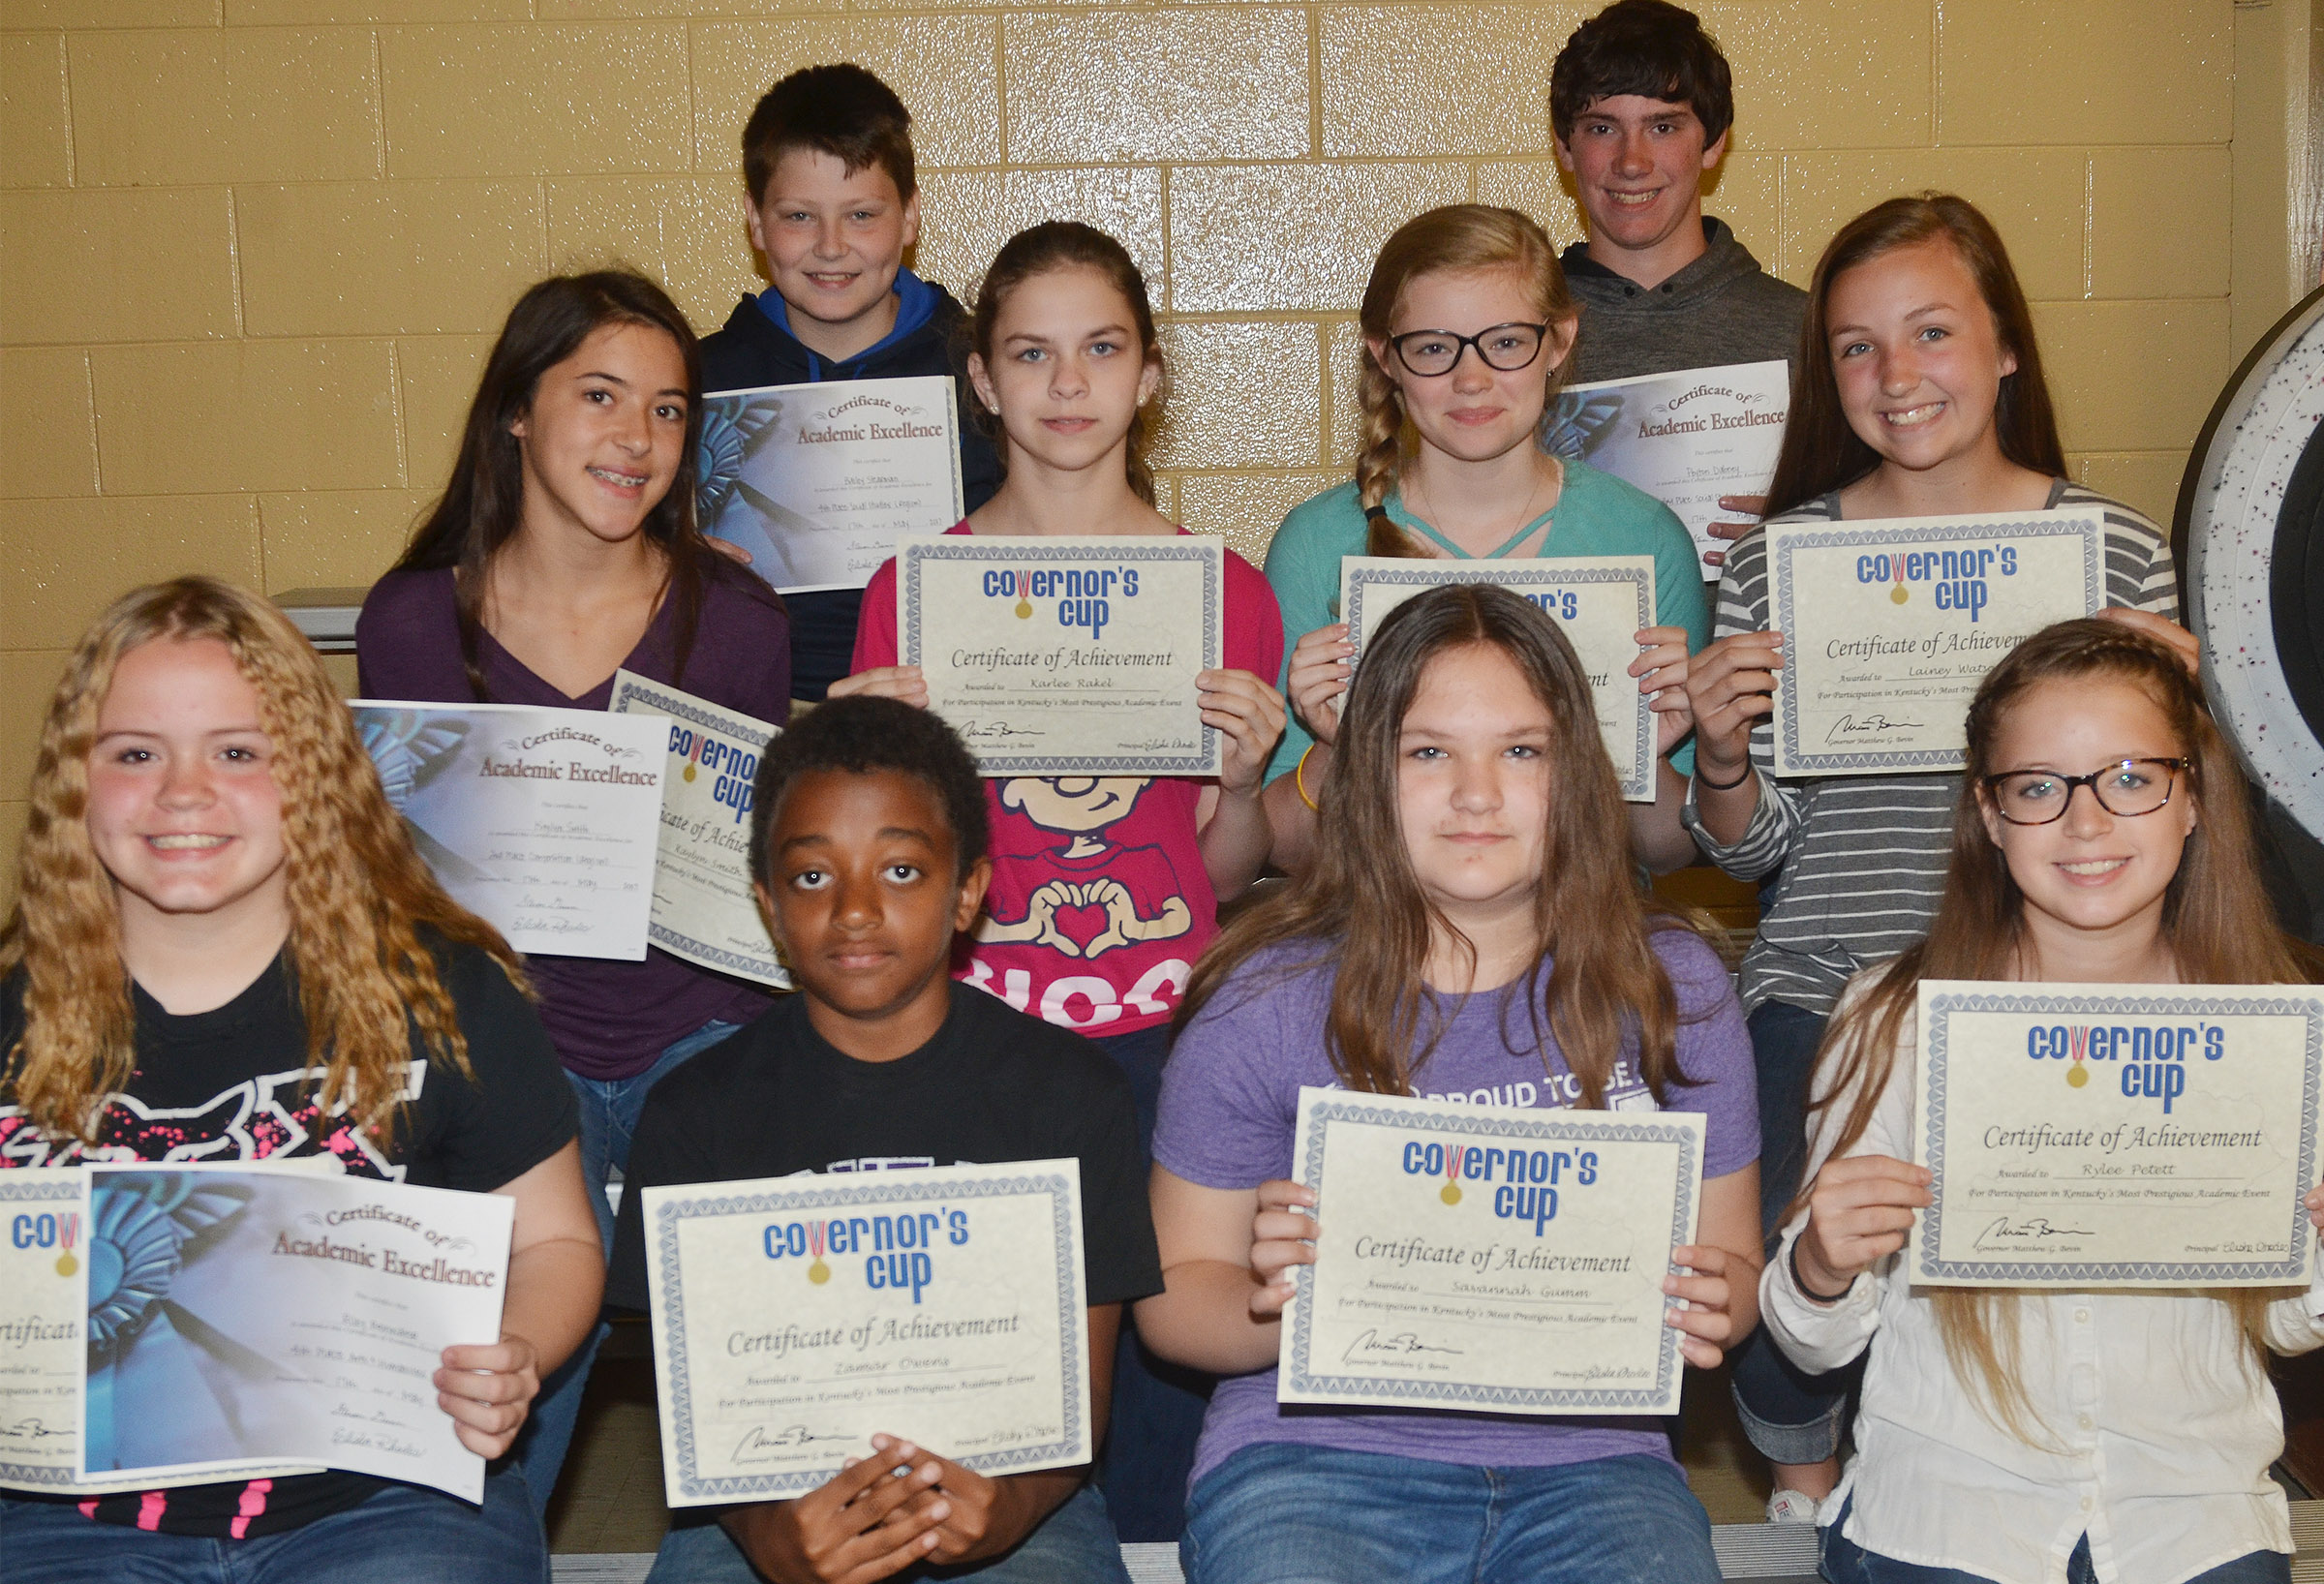 Academic team awards went to, from left, front, seventh-grader Riley Rainwater, sixth-grader Zamar Owens and seventh-graders Savannah Gumm and Rylee Petett. Back, seventh-grader Kaylyn Smith, sixth-graders Karlee Rakel and Whitney Frashure and seventh-grader Lainey Watson. Back, seventh-graders Bailey Stearman and Peyton Dabney.